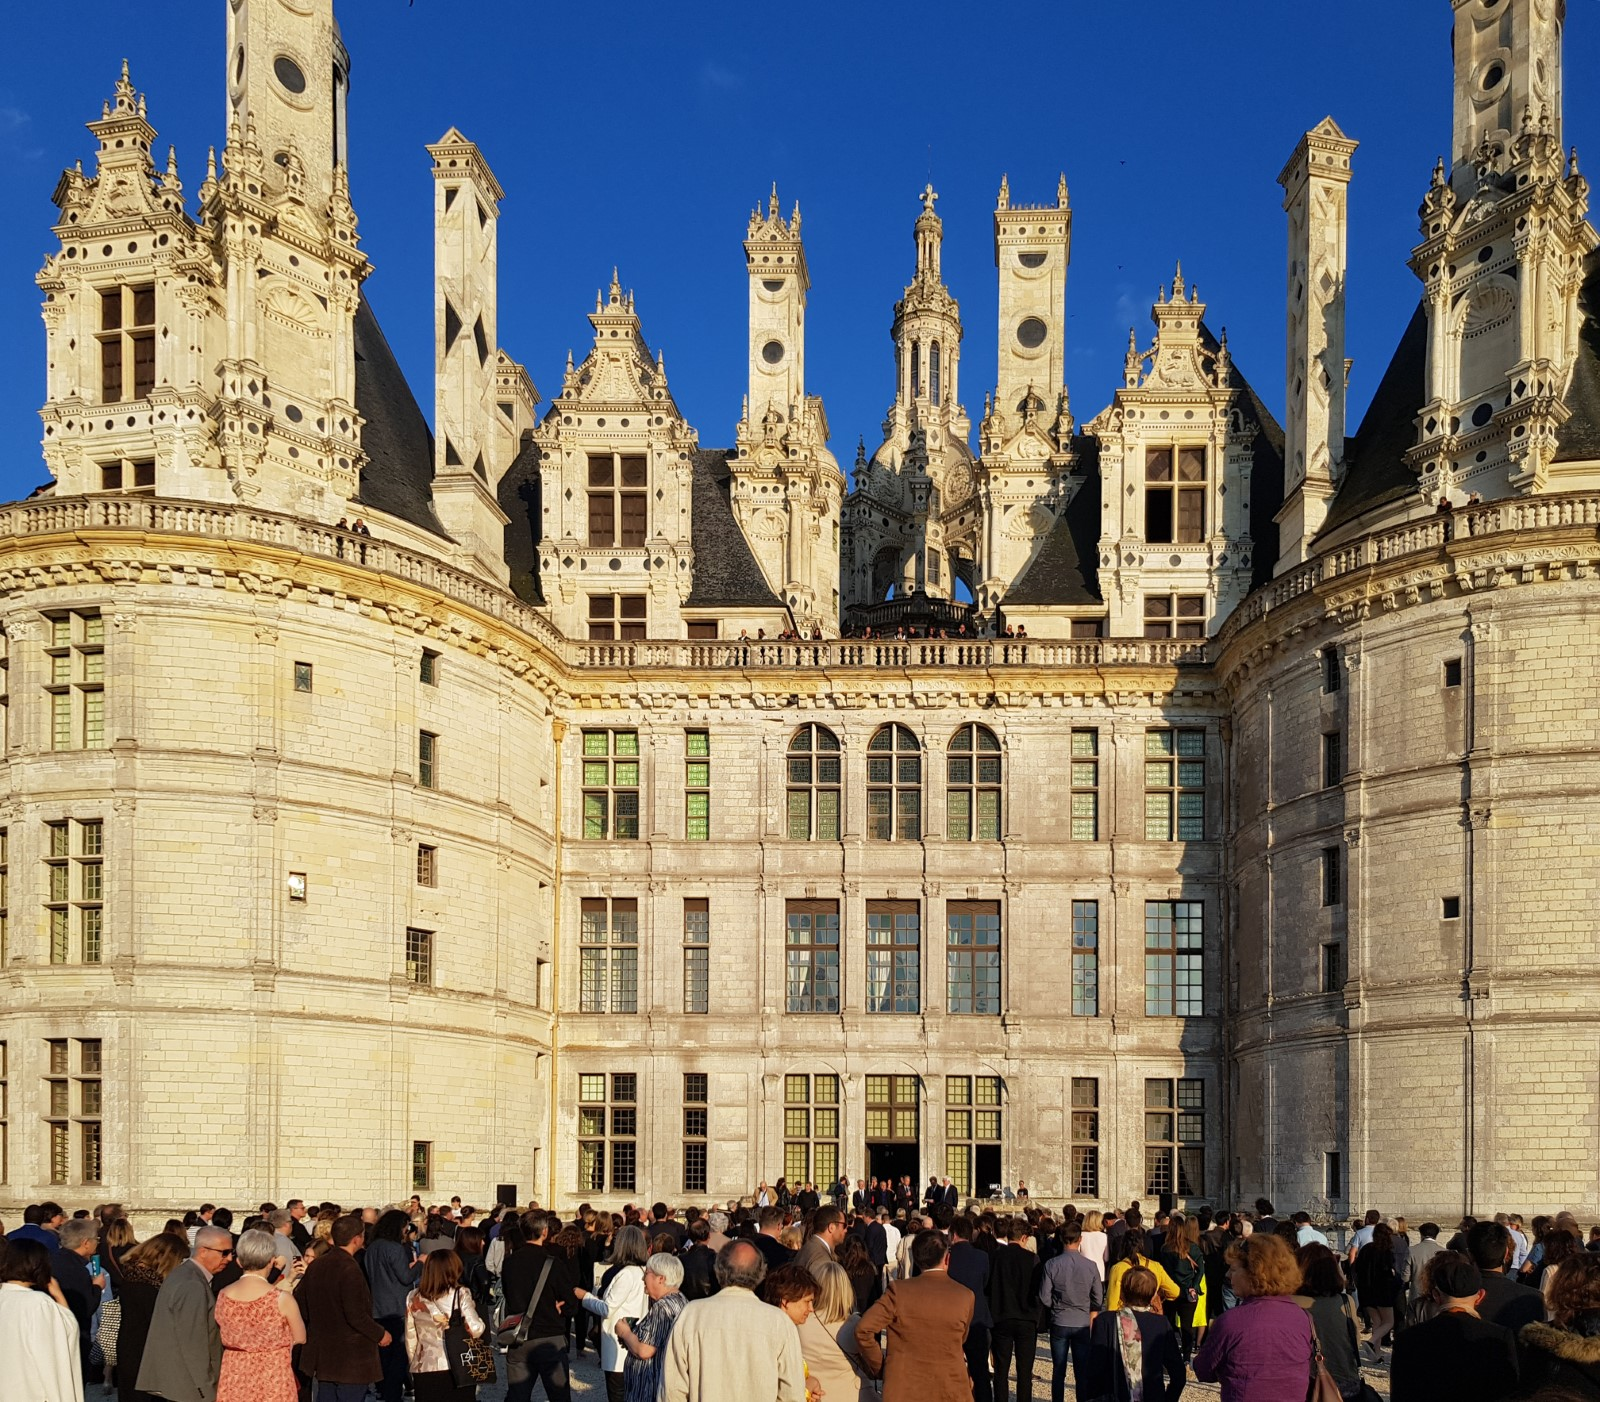 chambord opening event